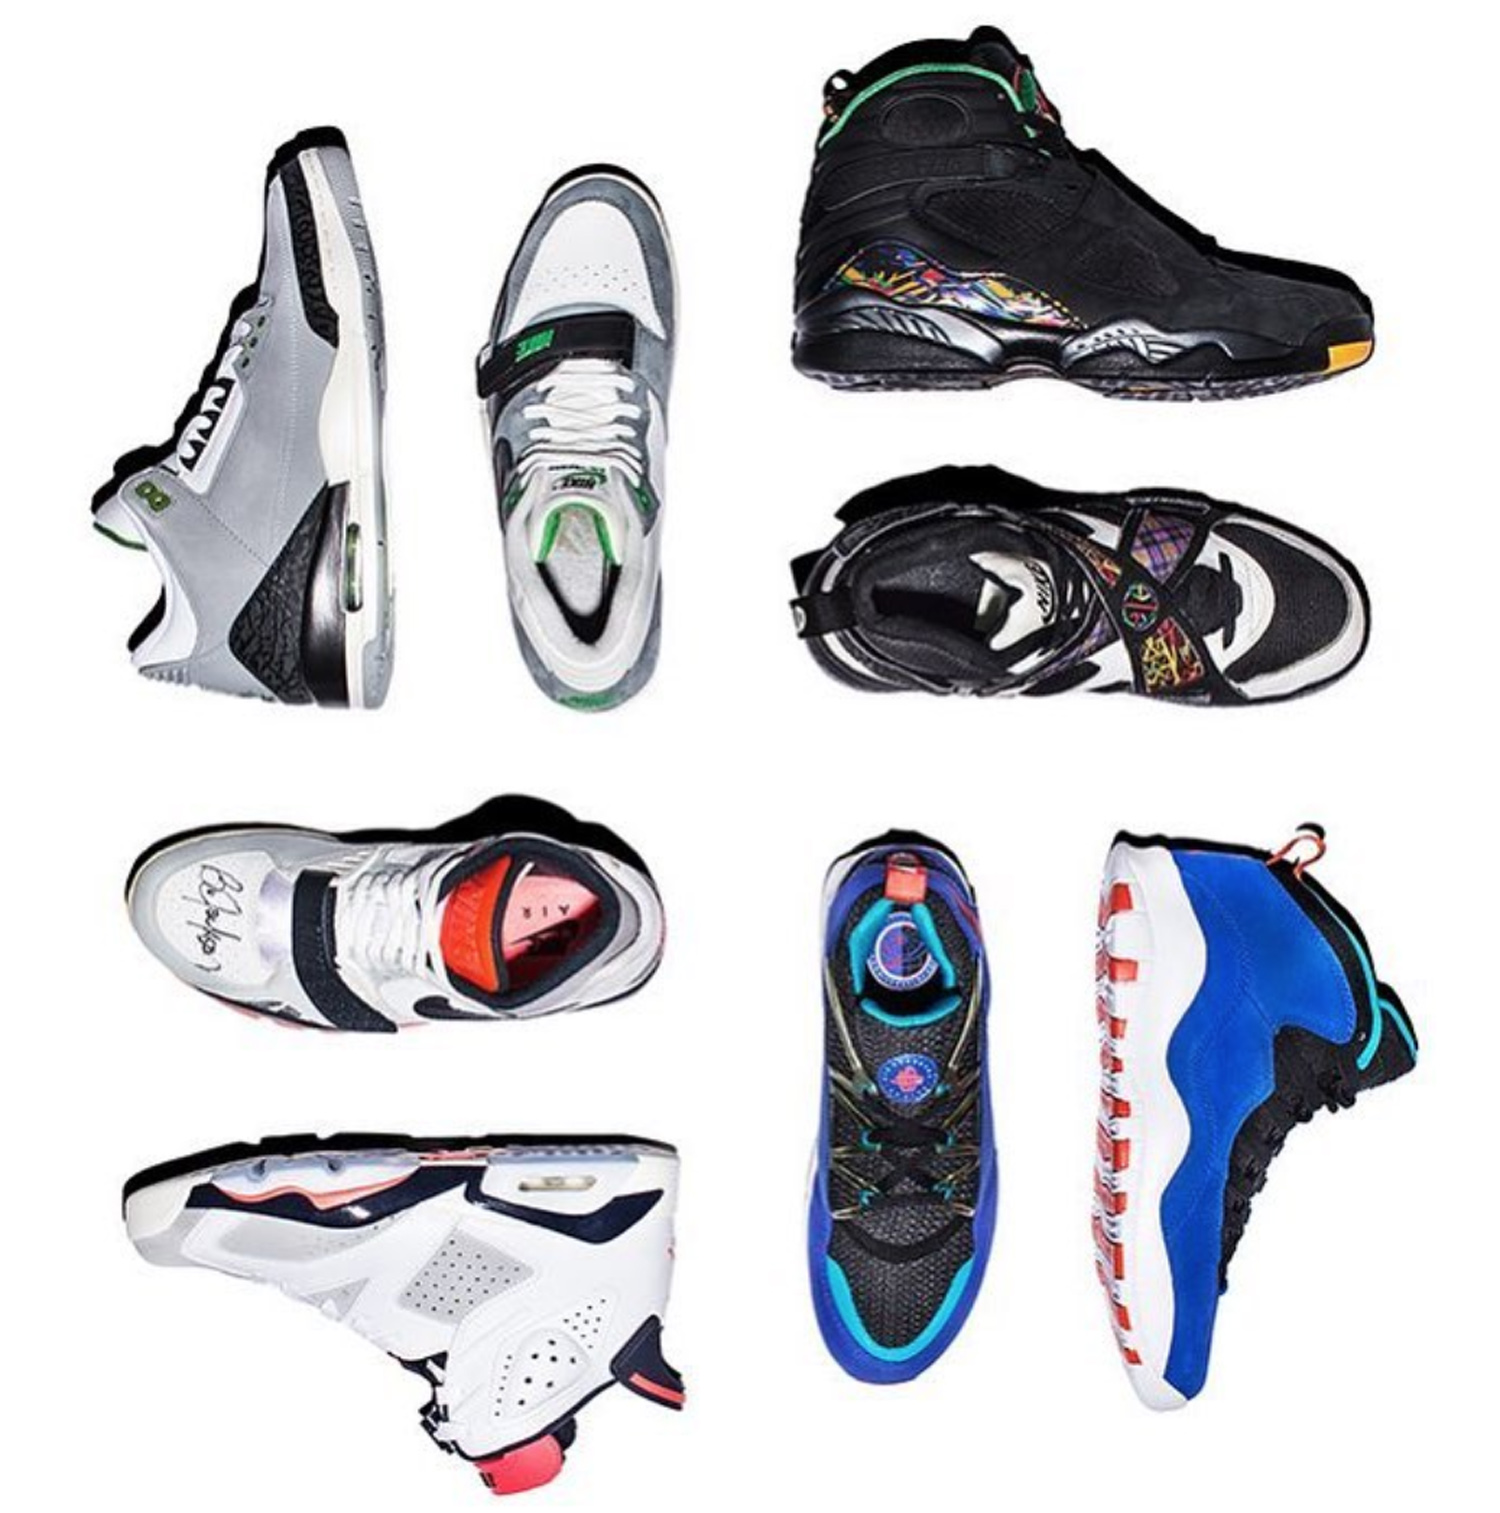 new arrival c7db6 bad37 Jordan Brand Draws Inspiration From Some of Tinker ...